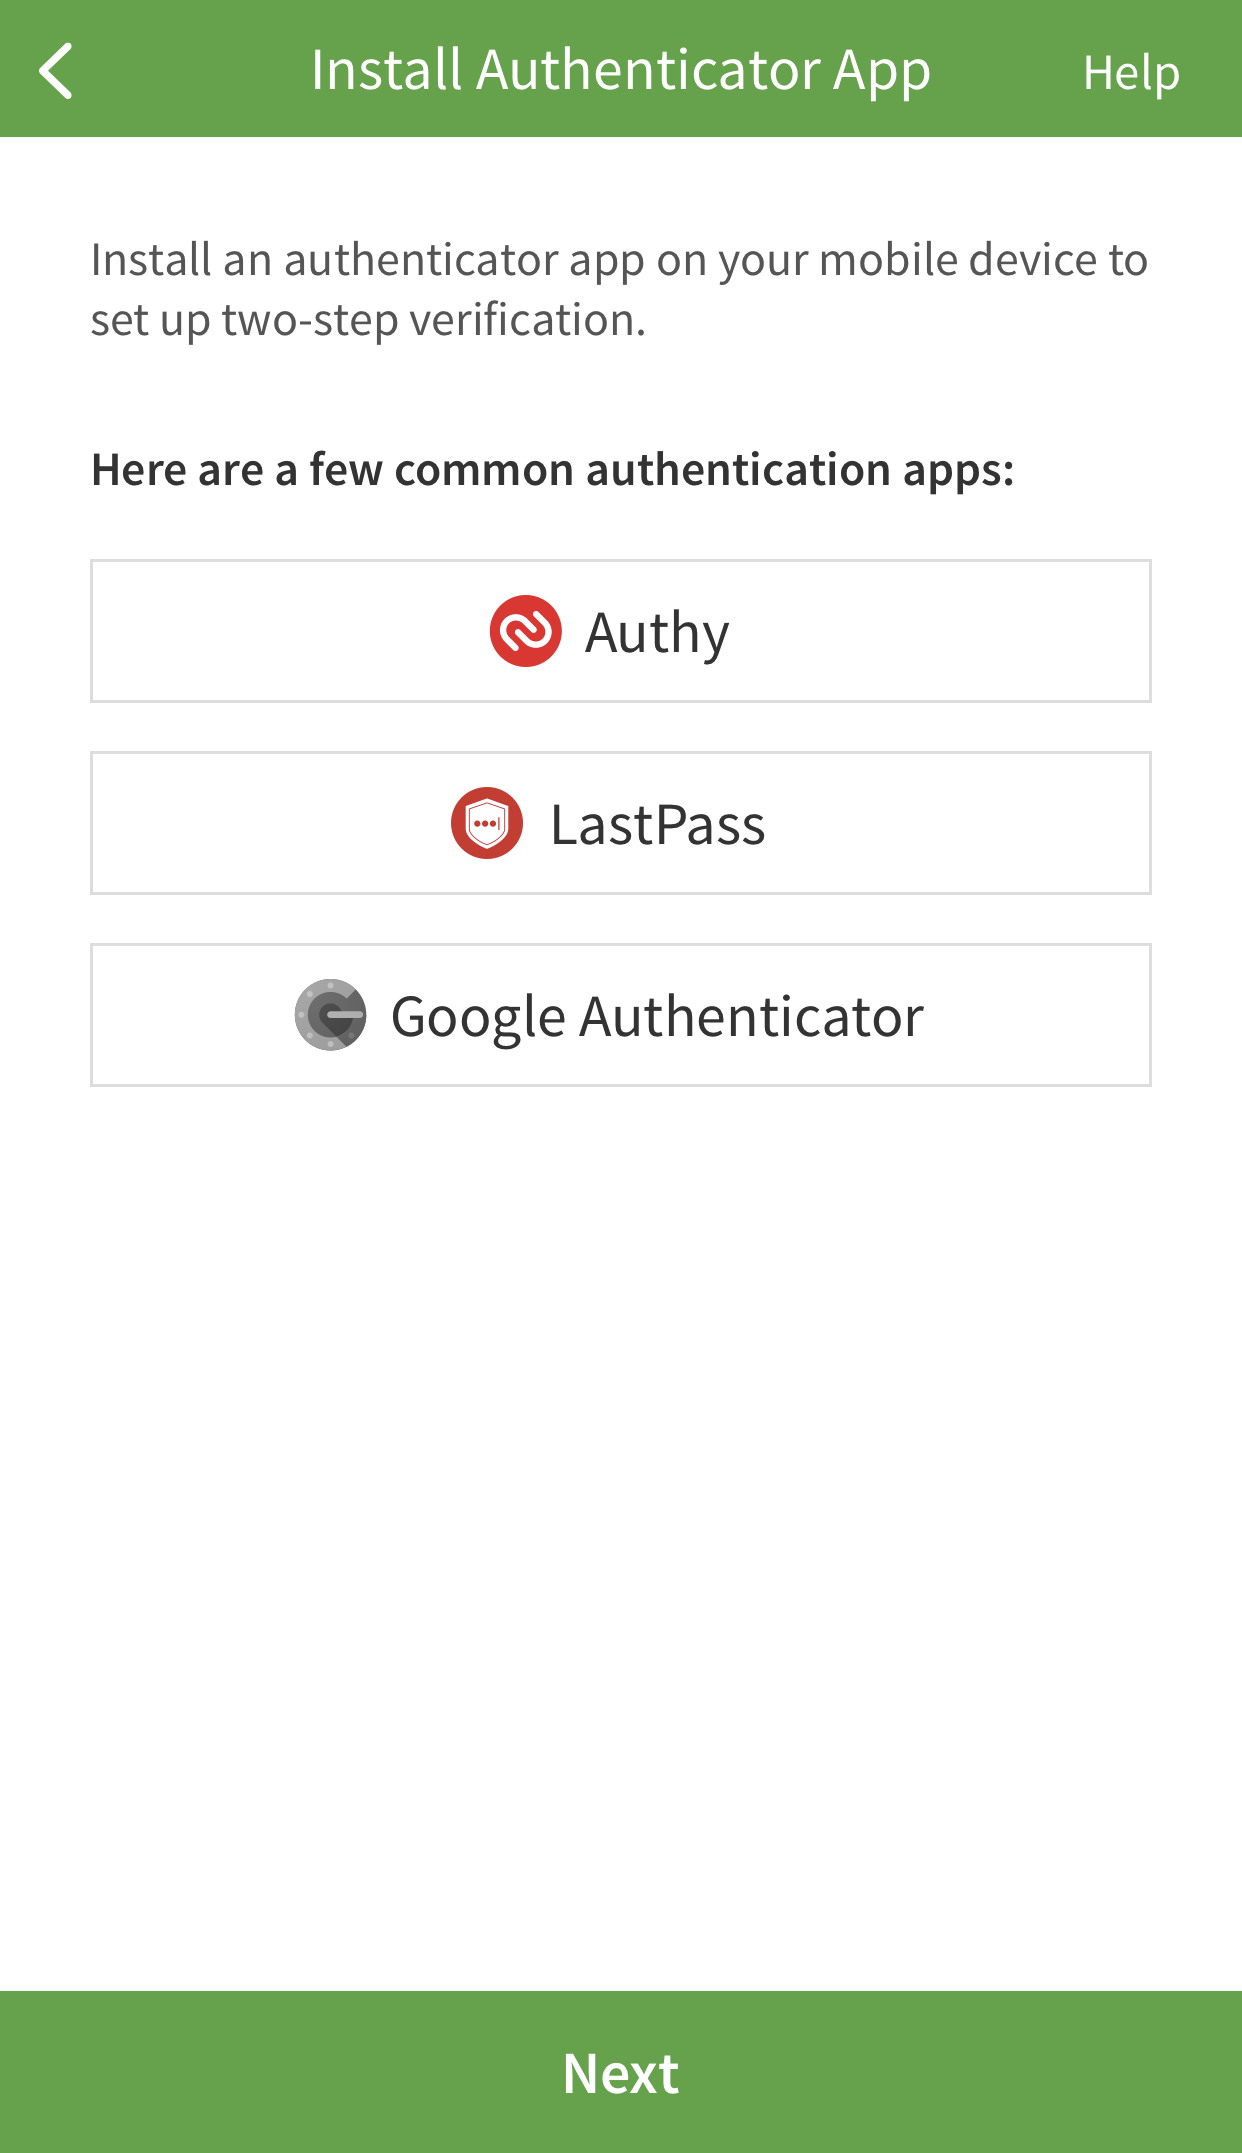 Authenticator App choices